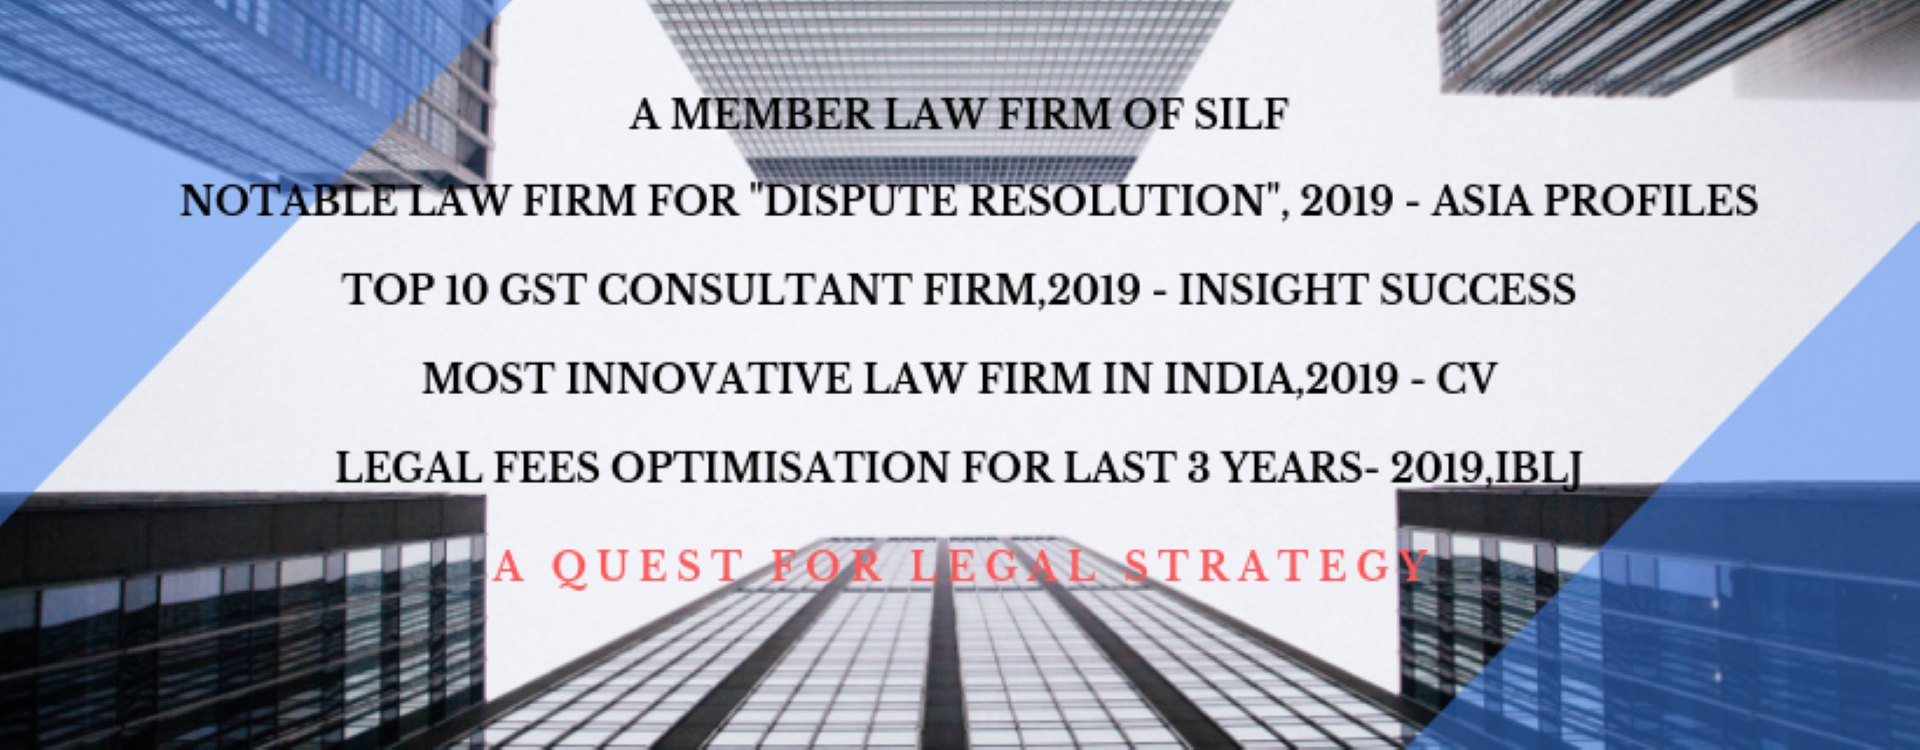 Law Firm In Ahmedabad Mumbai|GST| Arbitration| Lawyer